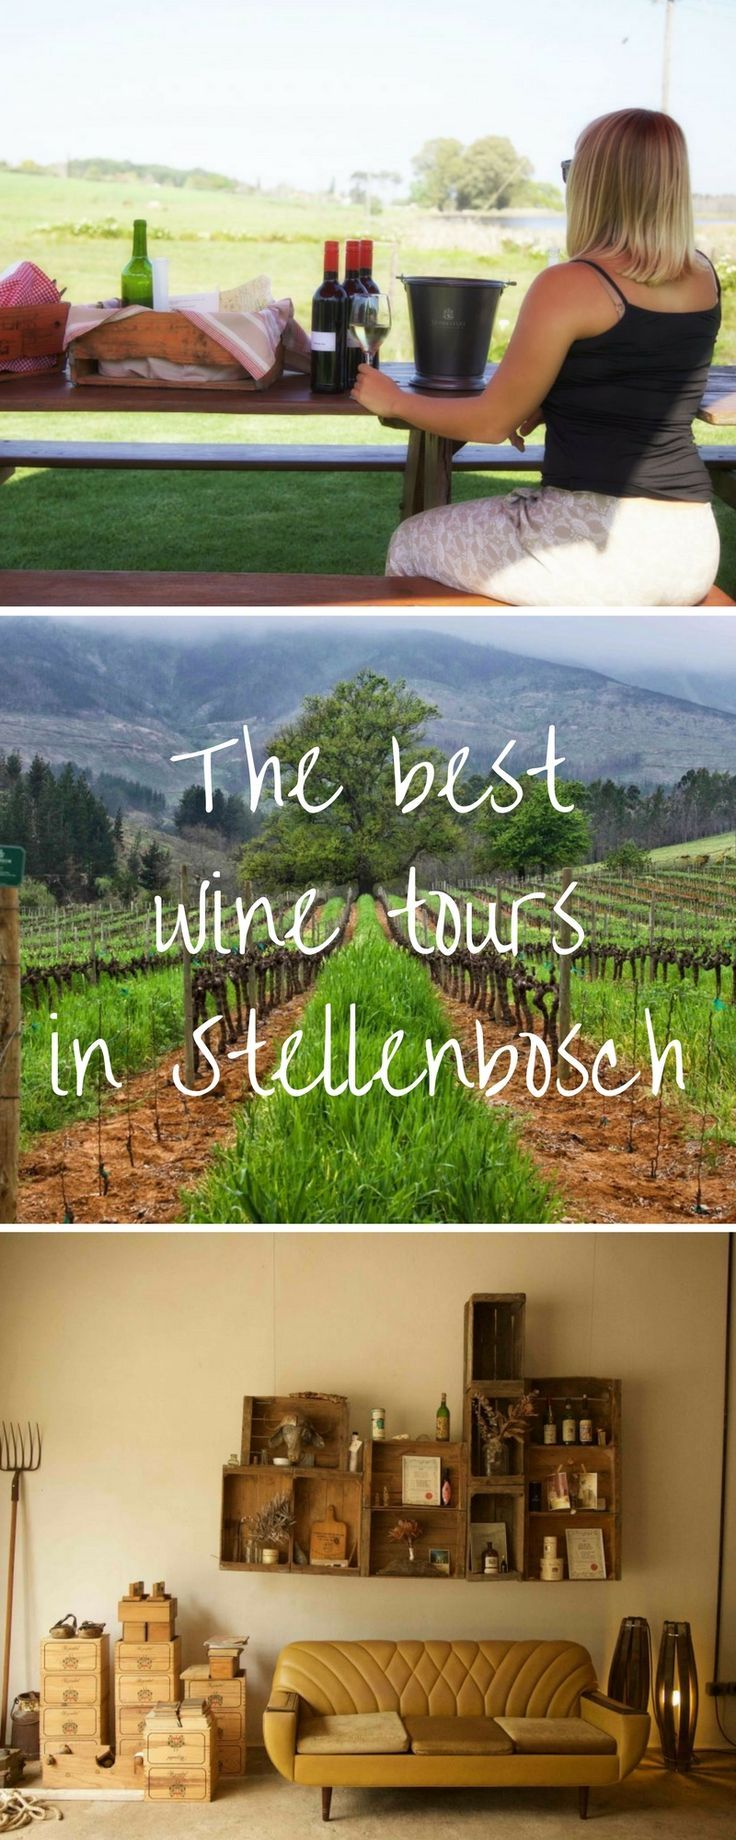 Fantastic things to do in Stellenbosch, South Africa. Including good restaurants, amazing vineyards and wineries. With a hotel suggestion!